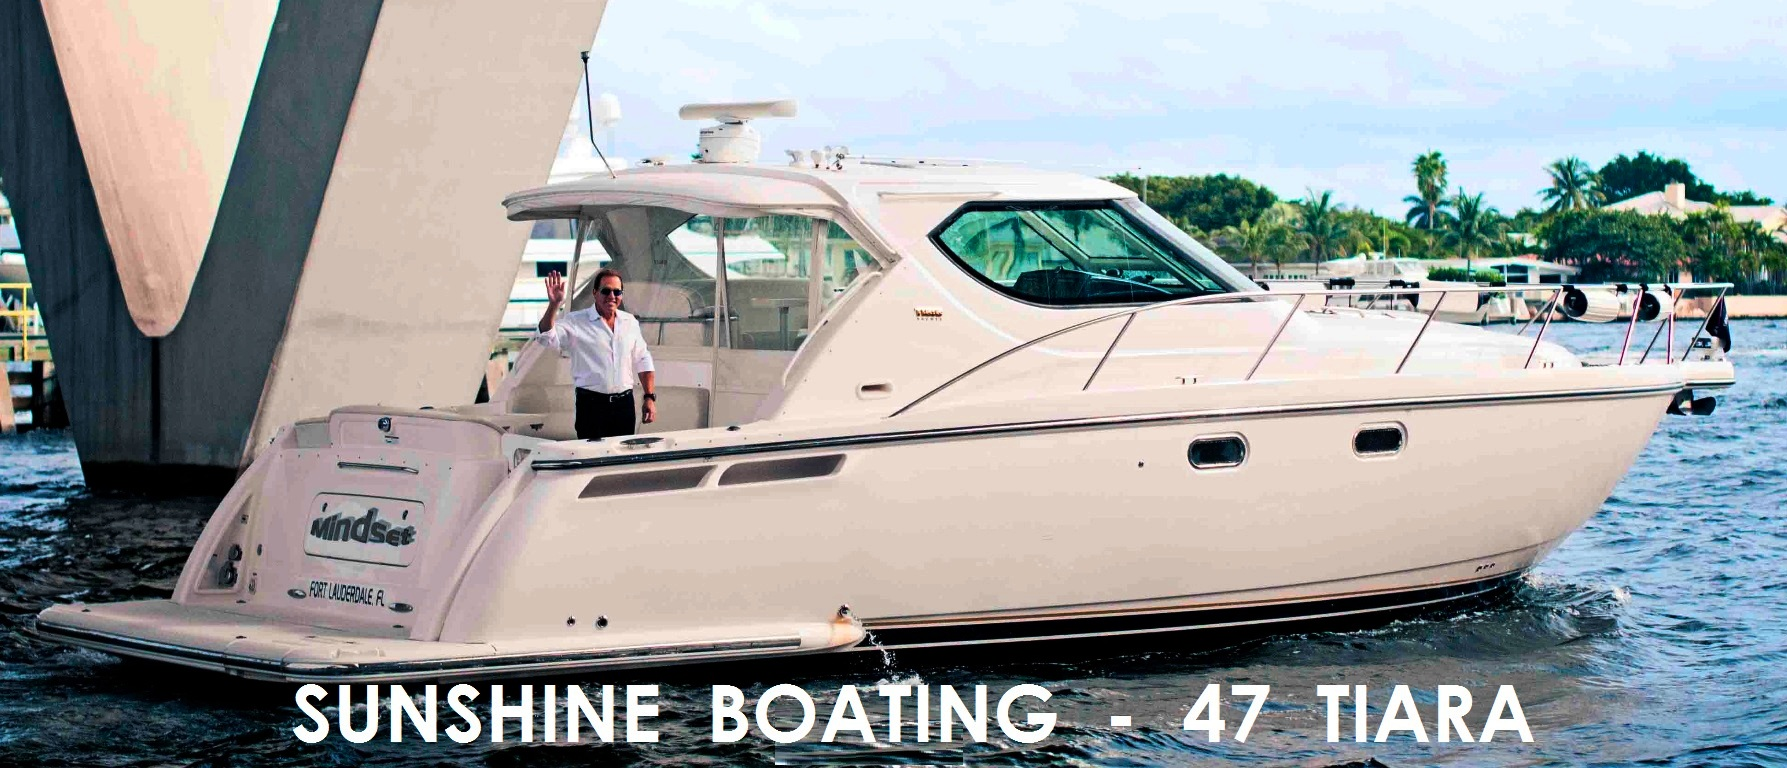 sunshine-boating-47-tiara-3